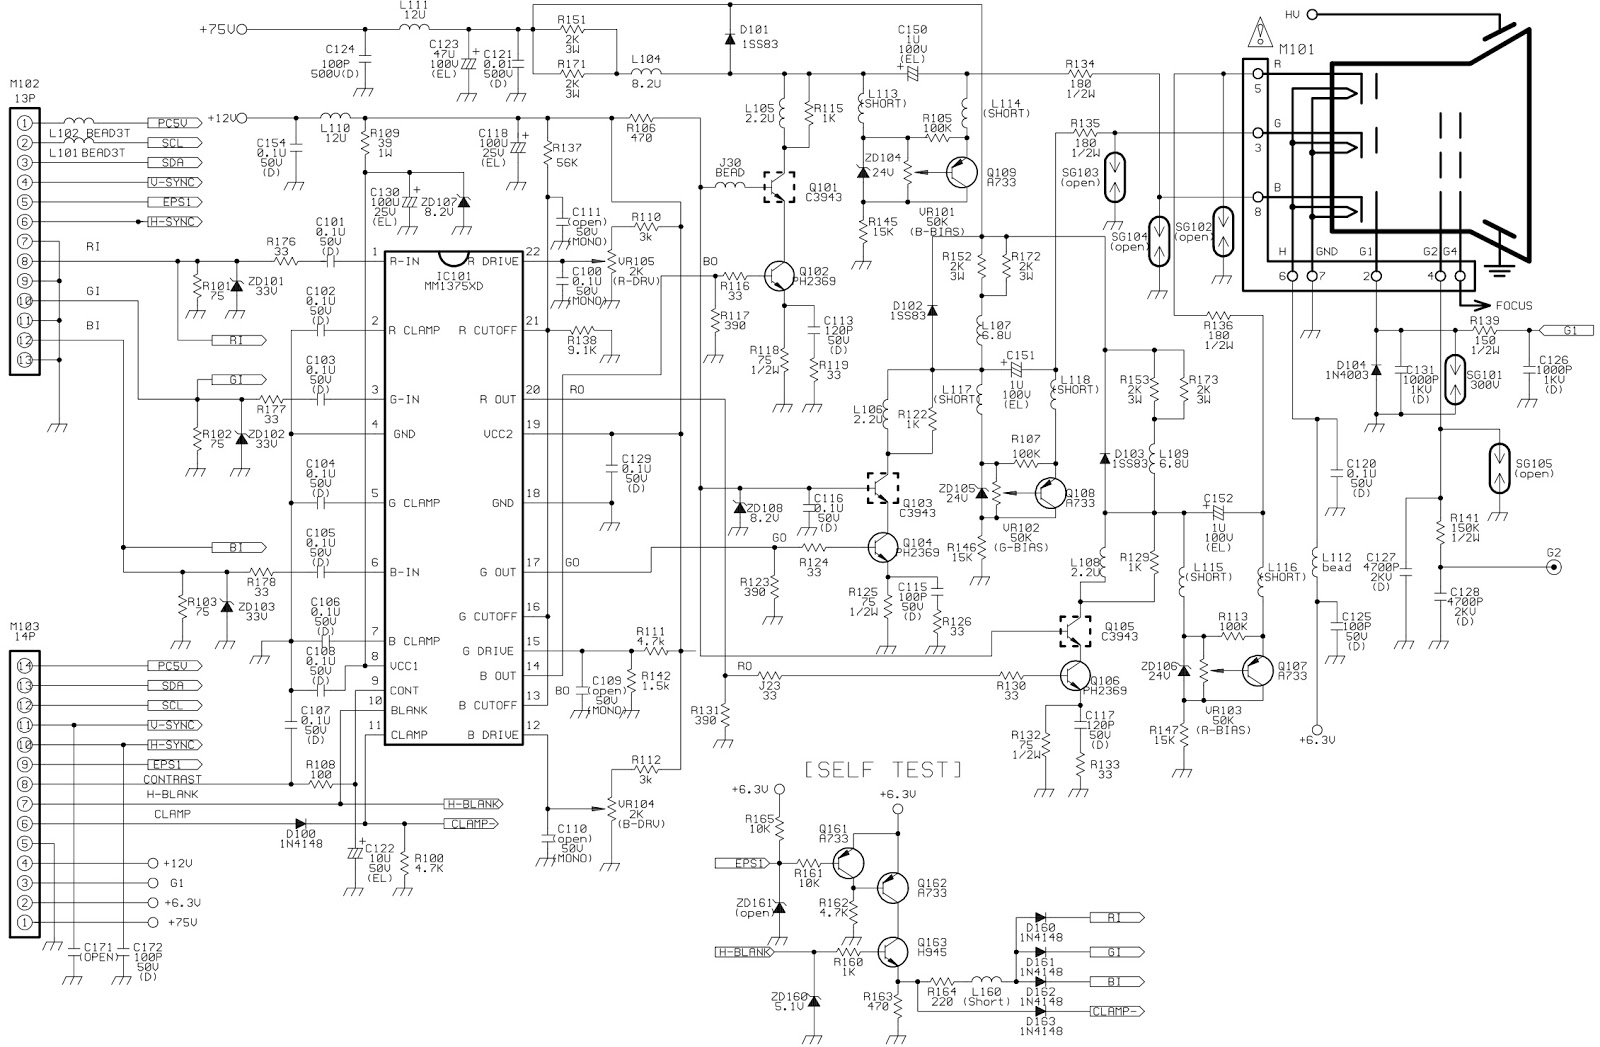 Working Of Crt Monitor With Diagram 2009 Nissan Titan Ignition Wiring Hp D2825 Acer 7254 Circuit Full